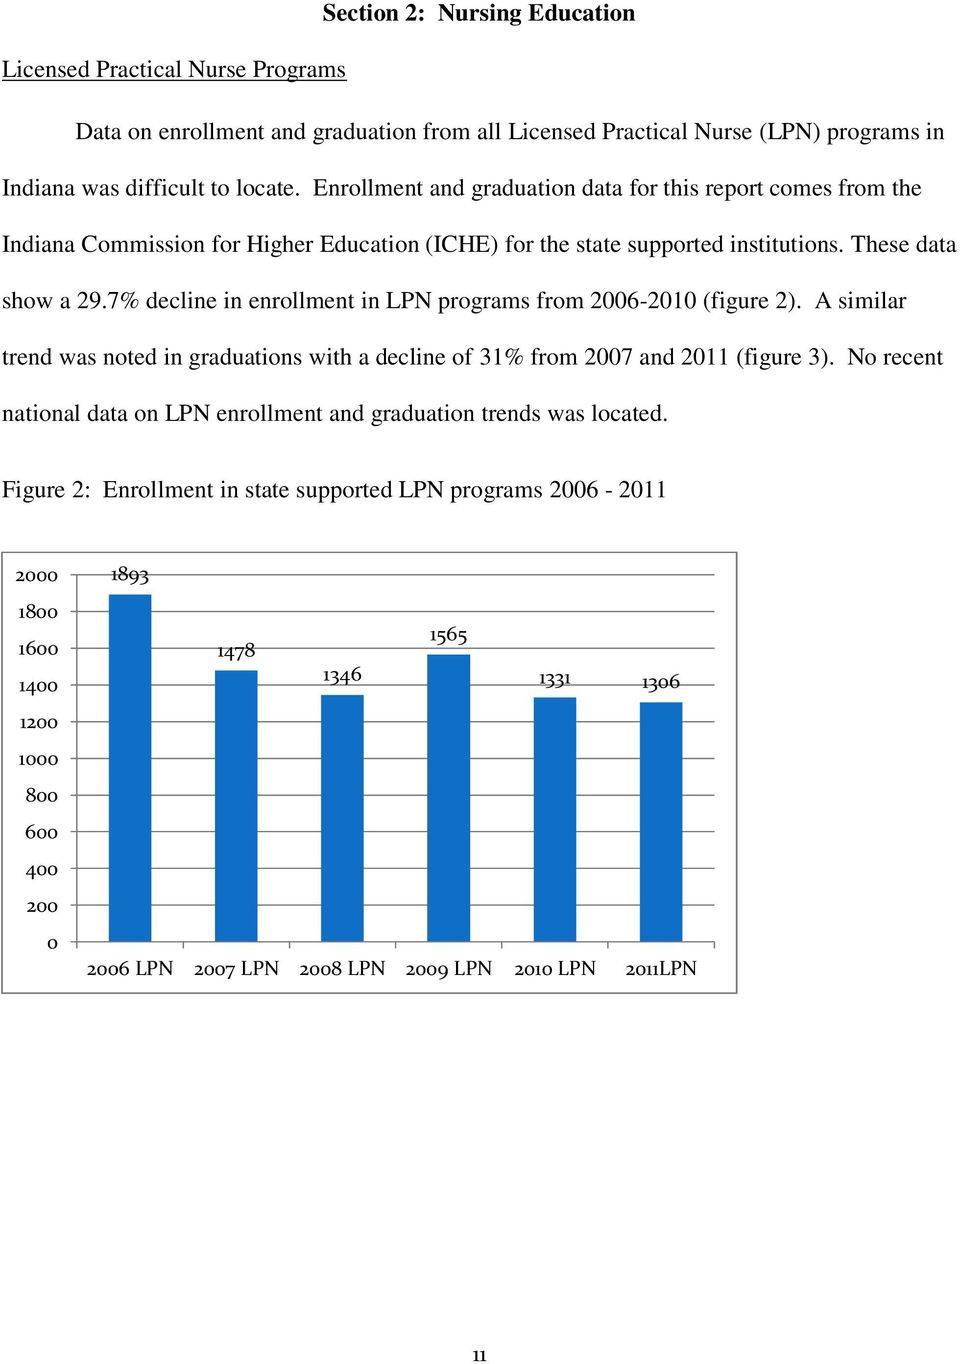 7% decline in enrollment in LPN programs from 2006-2010 (figure 2). A similar trend was noted in graduations with a decline of 31% from 2007 and 2011 (figure 3).